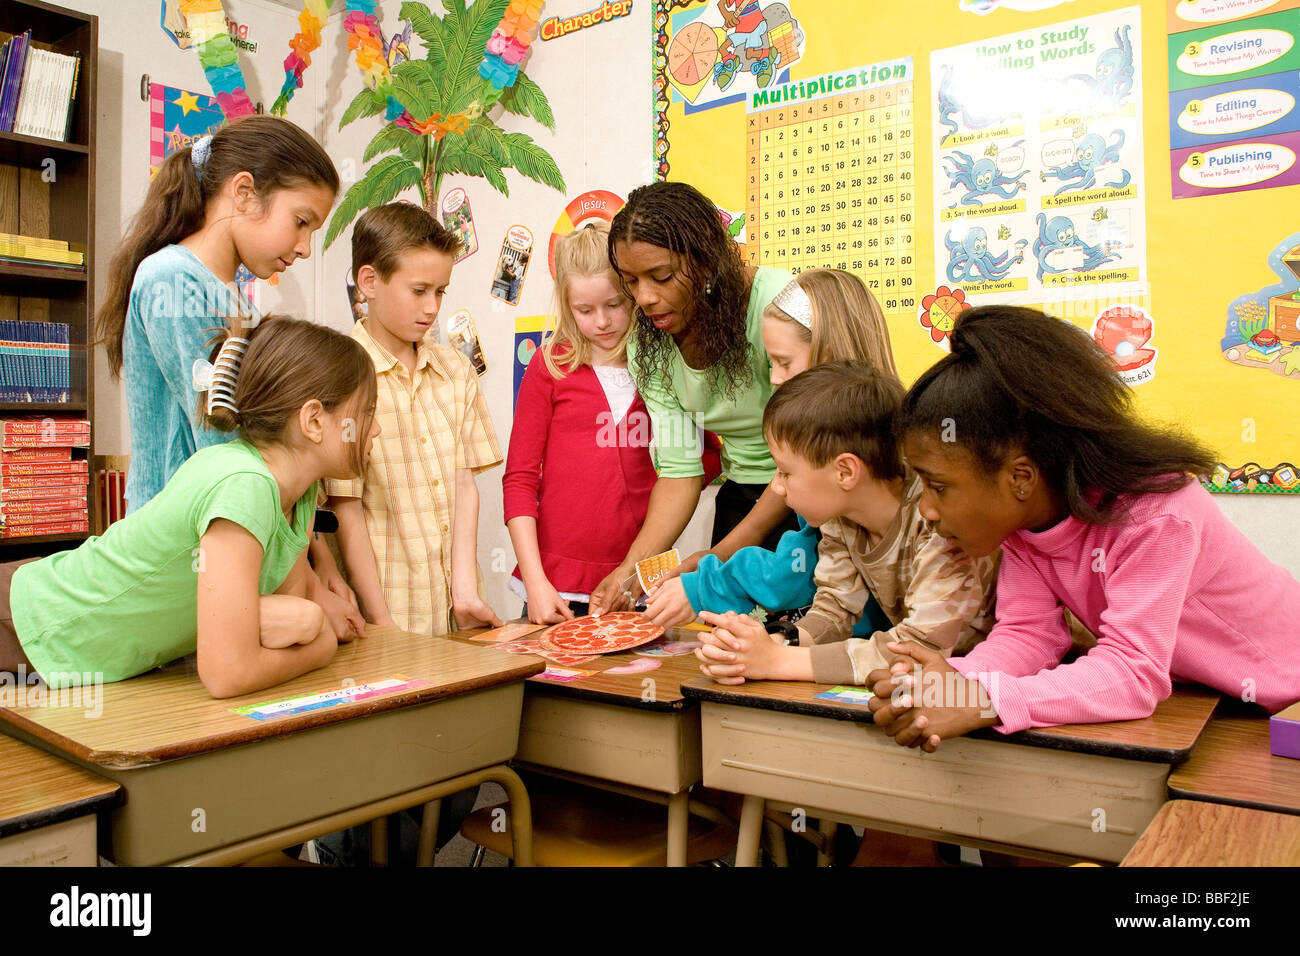 multi interracial diverse interracial Teacher teaching children grouped together 8-10 year old primary school  classroom - Stock Image